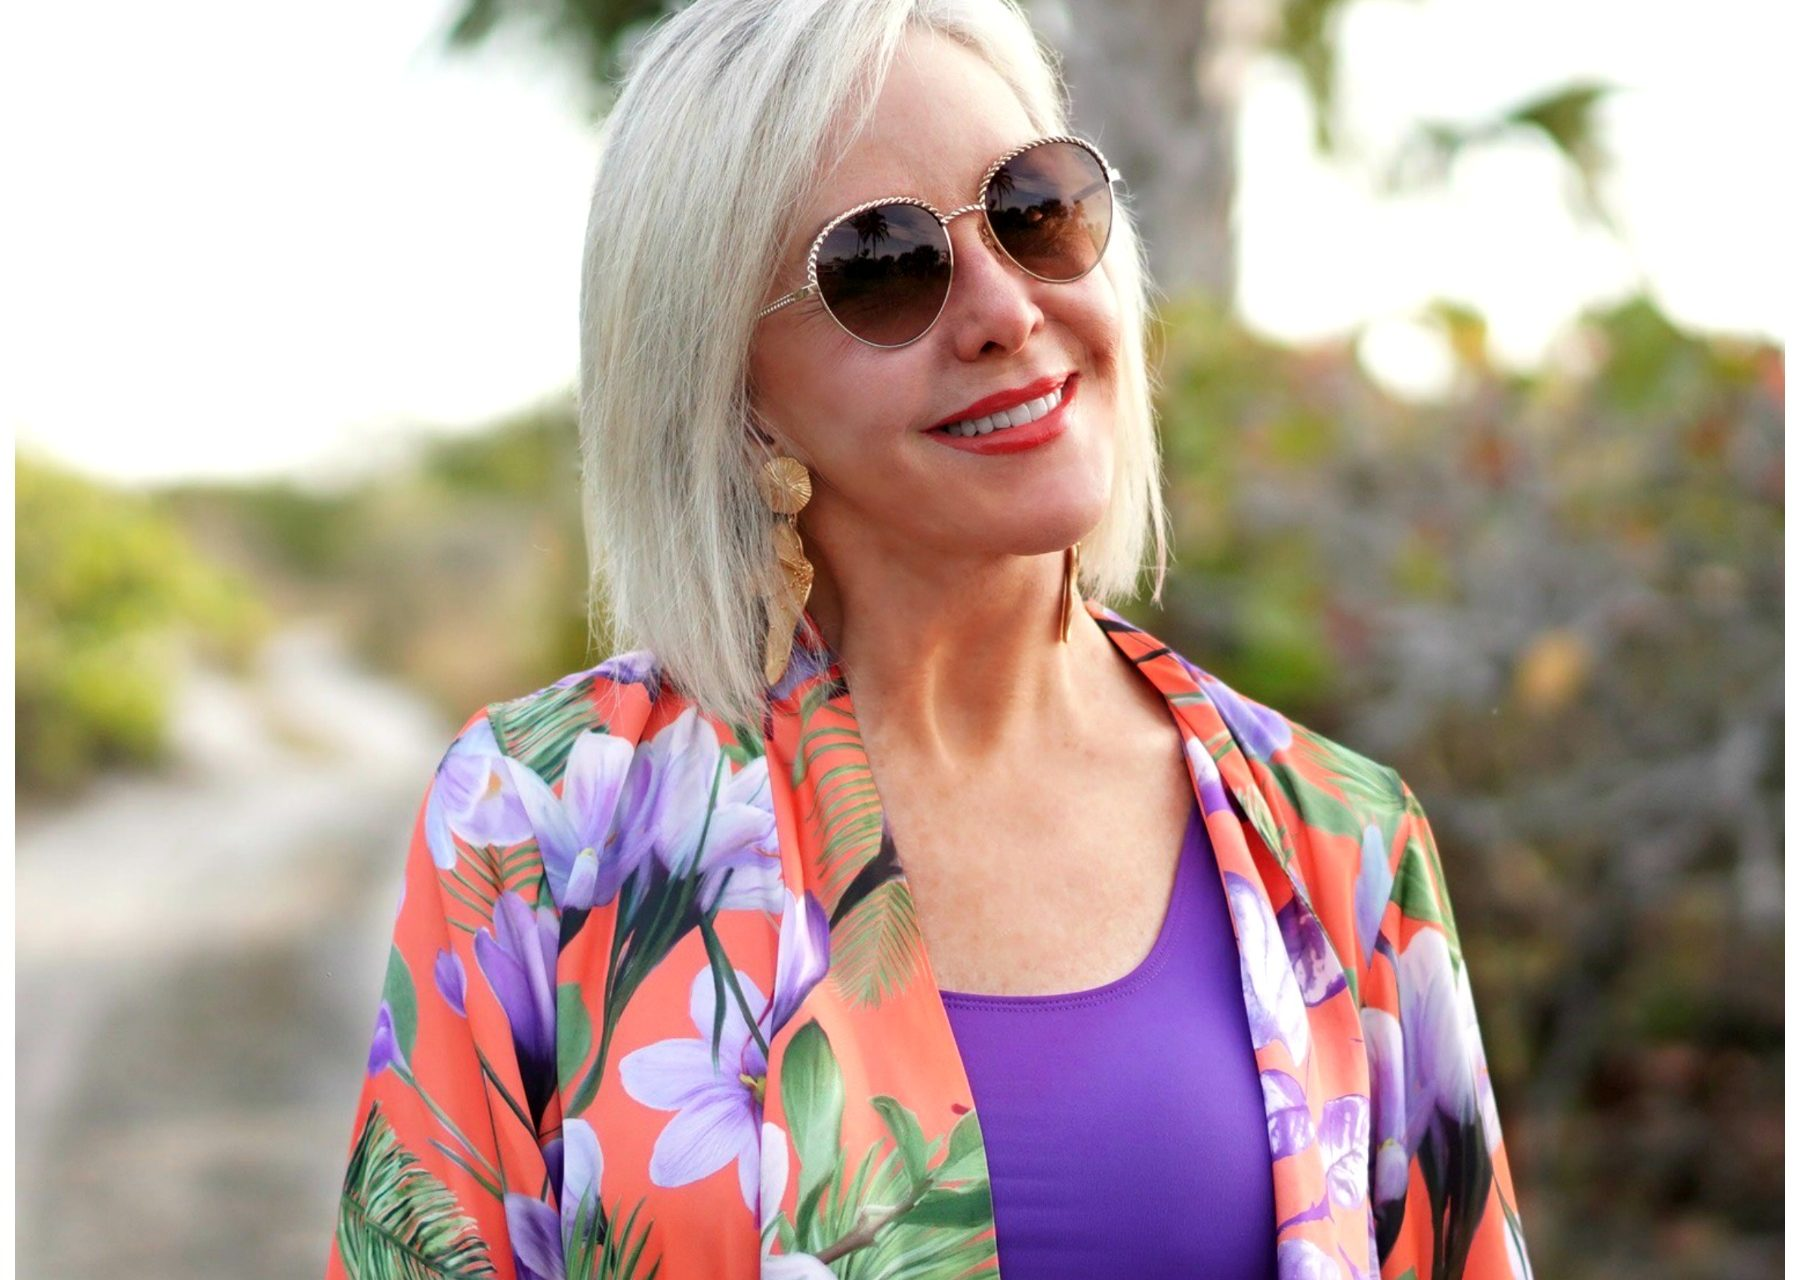 Sheree Frede of the SheShe Show wearing sunglasses and floral top